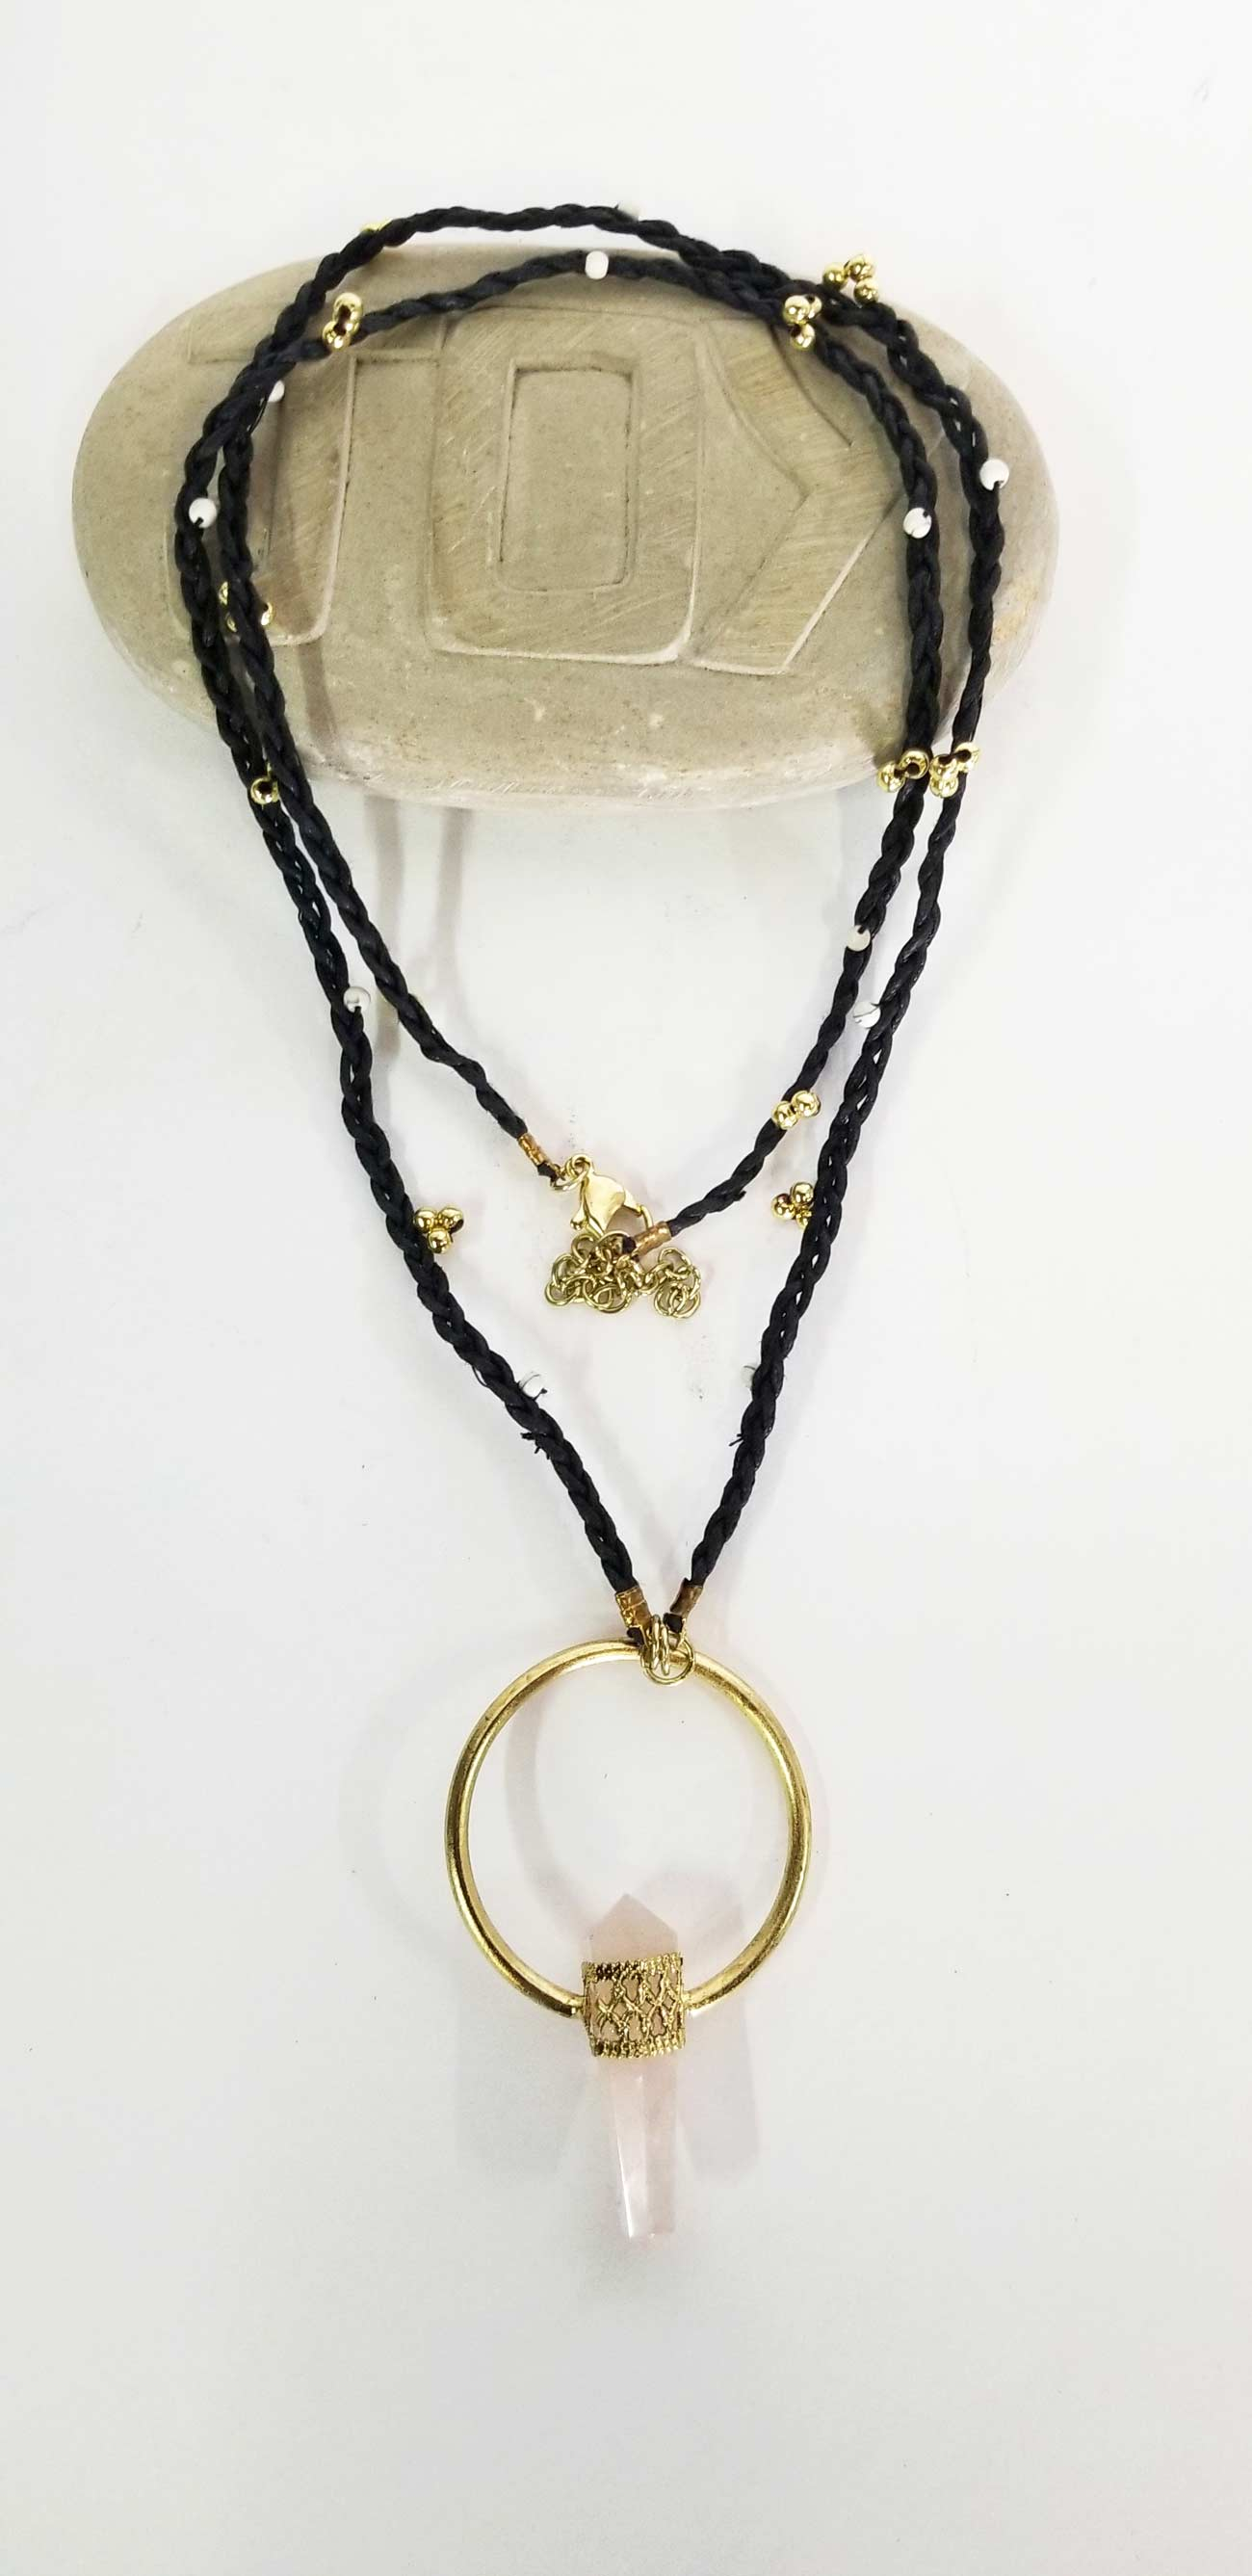 Accessories | Mala | Necklace Braided Rose Quartz